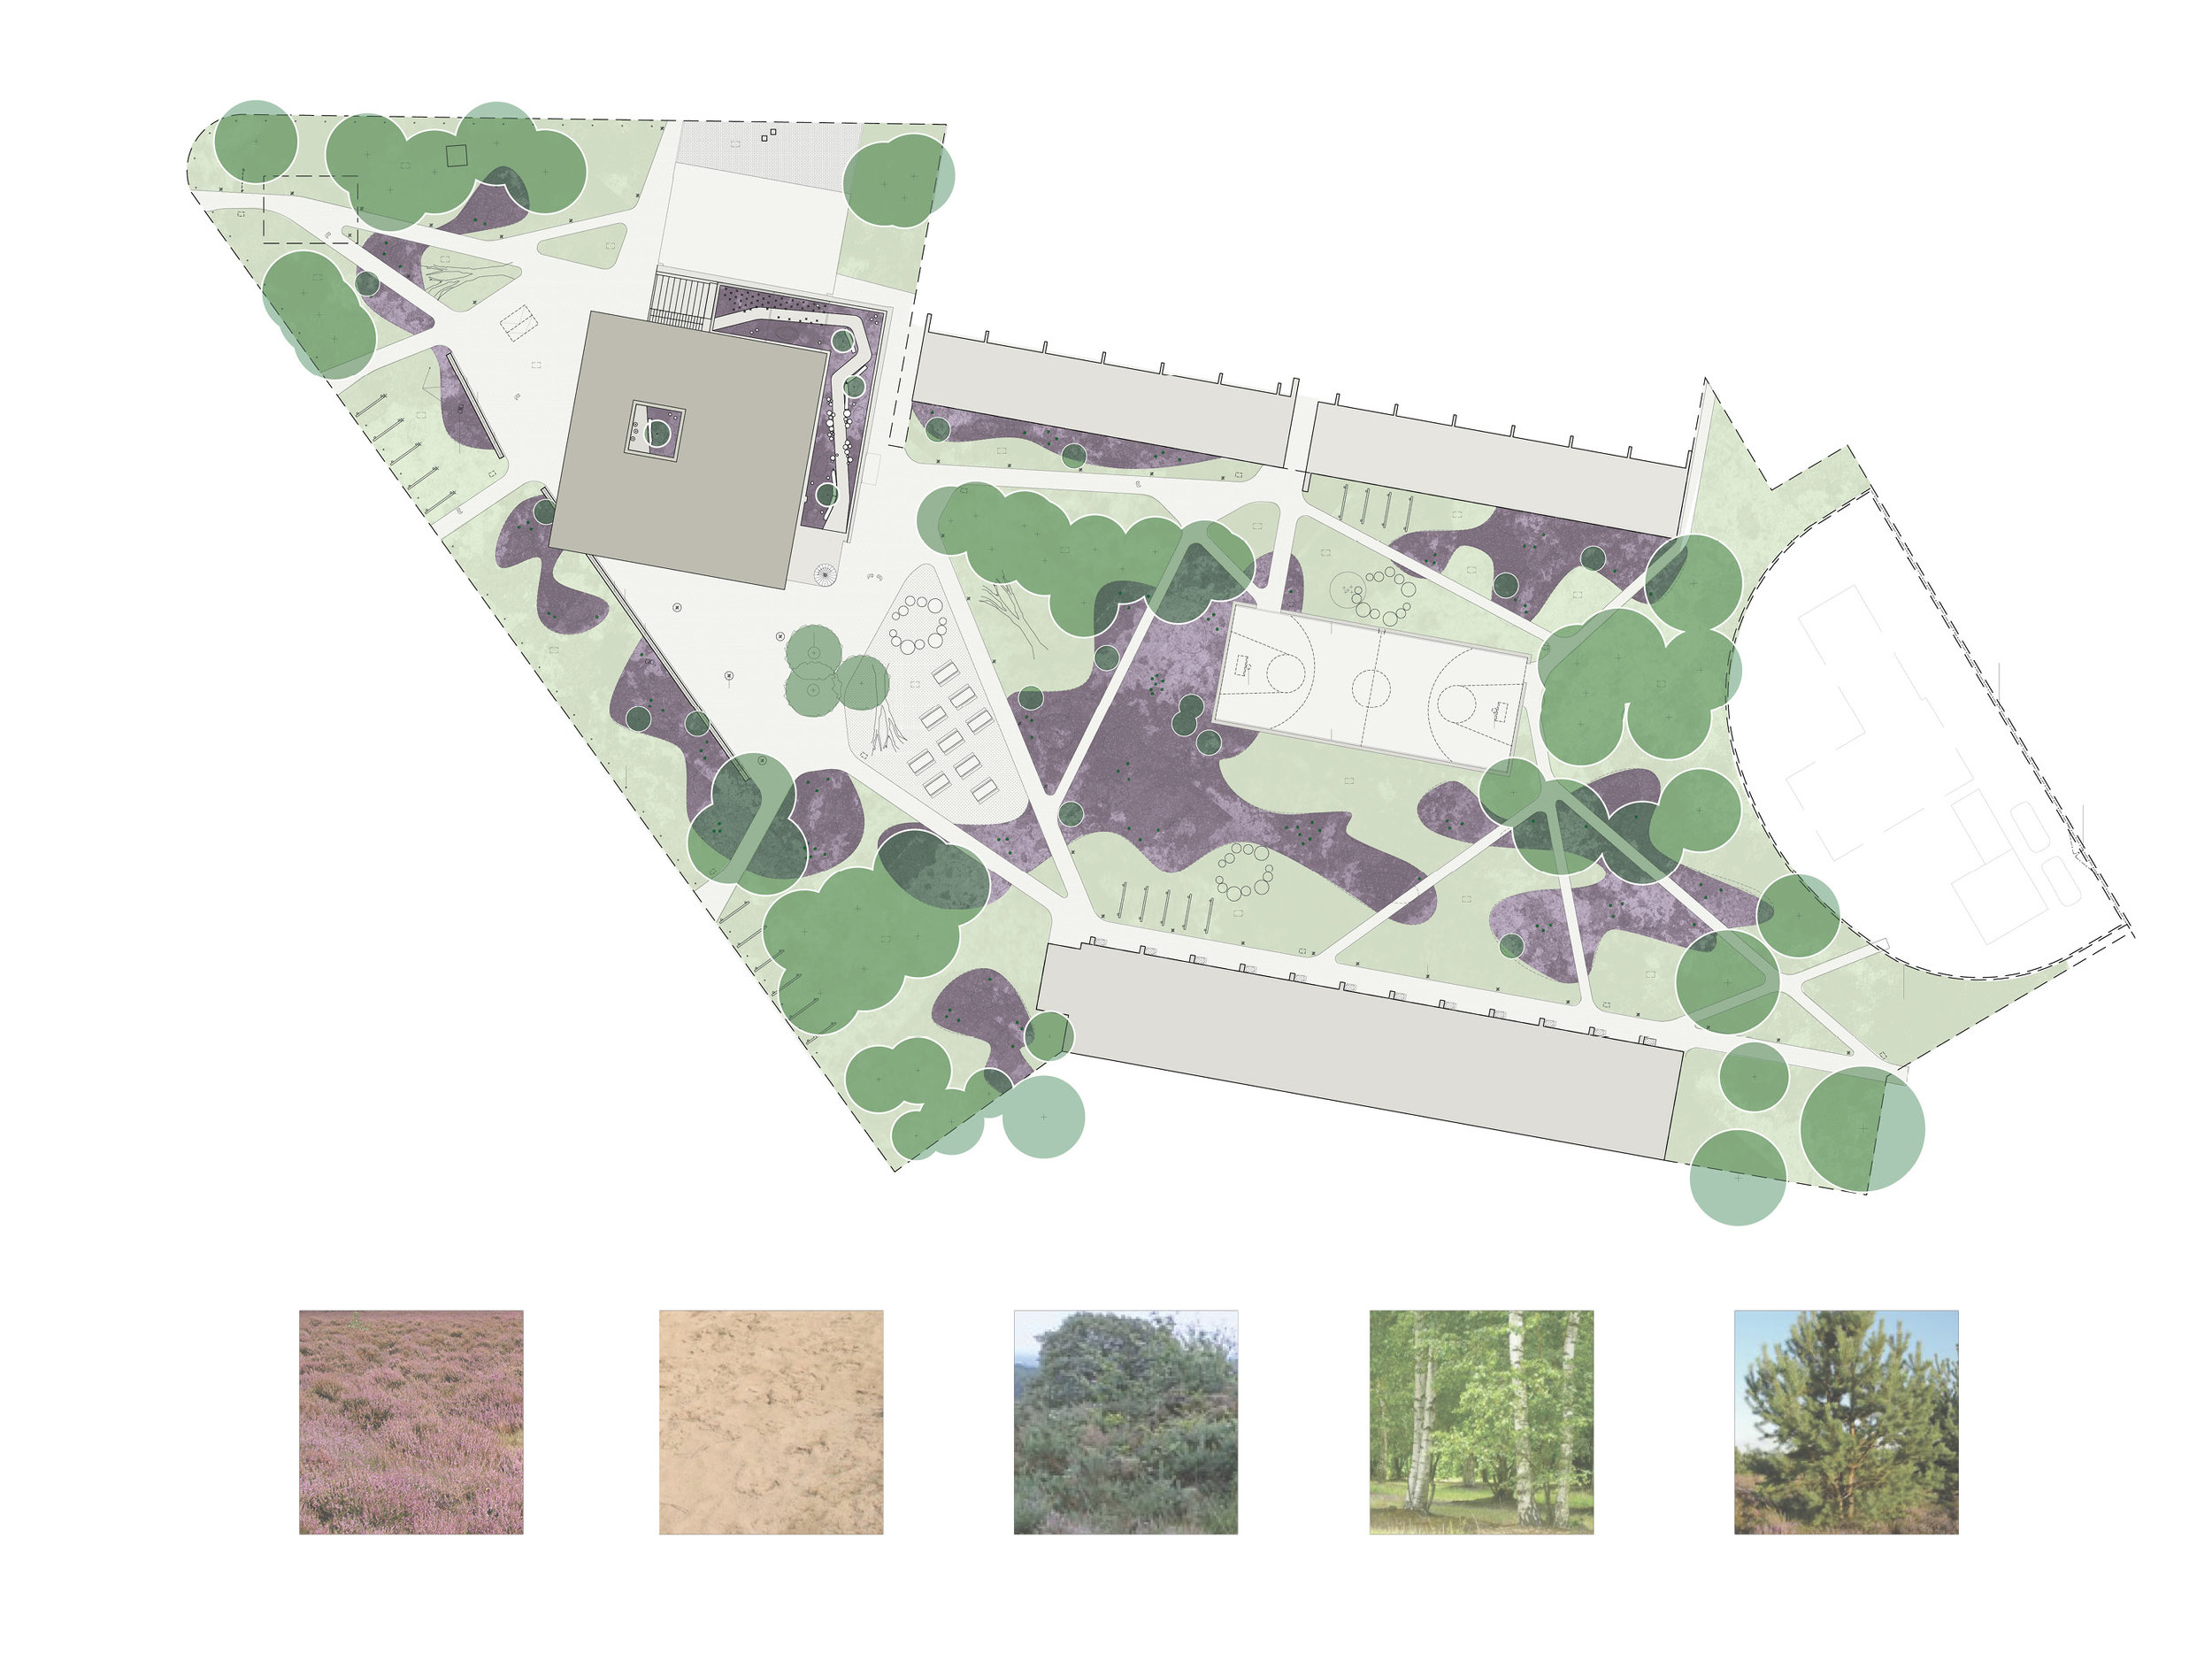 local biotope as inspiration for the landscape design: heath, sand, birch and fir trees